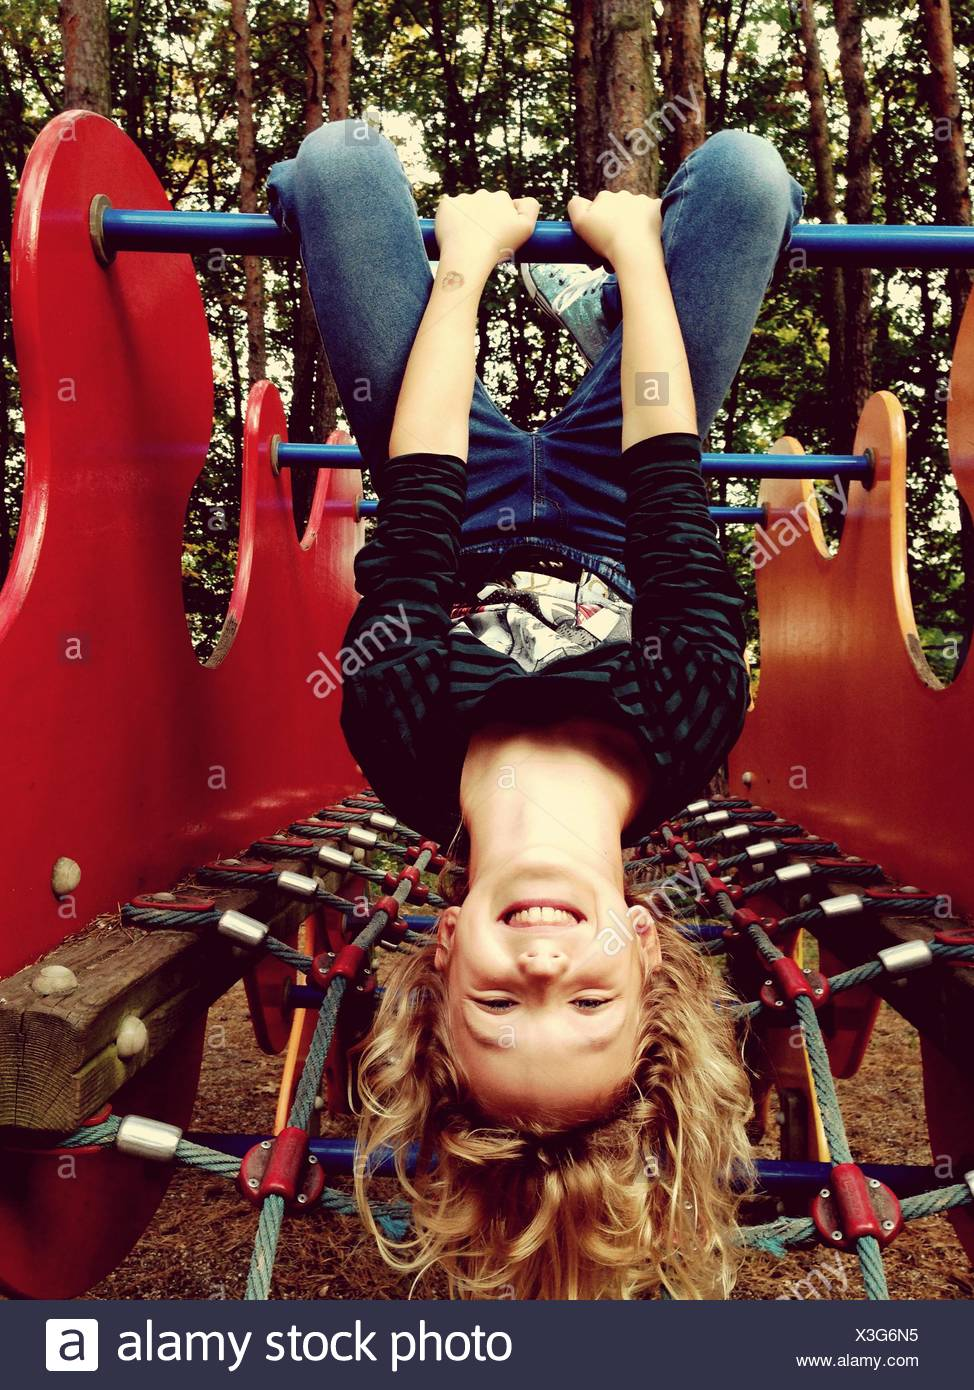 Portrait Of Happy Cute Girl Playing On Monkey Bars In Playground - Stock Image